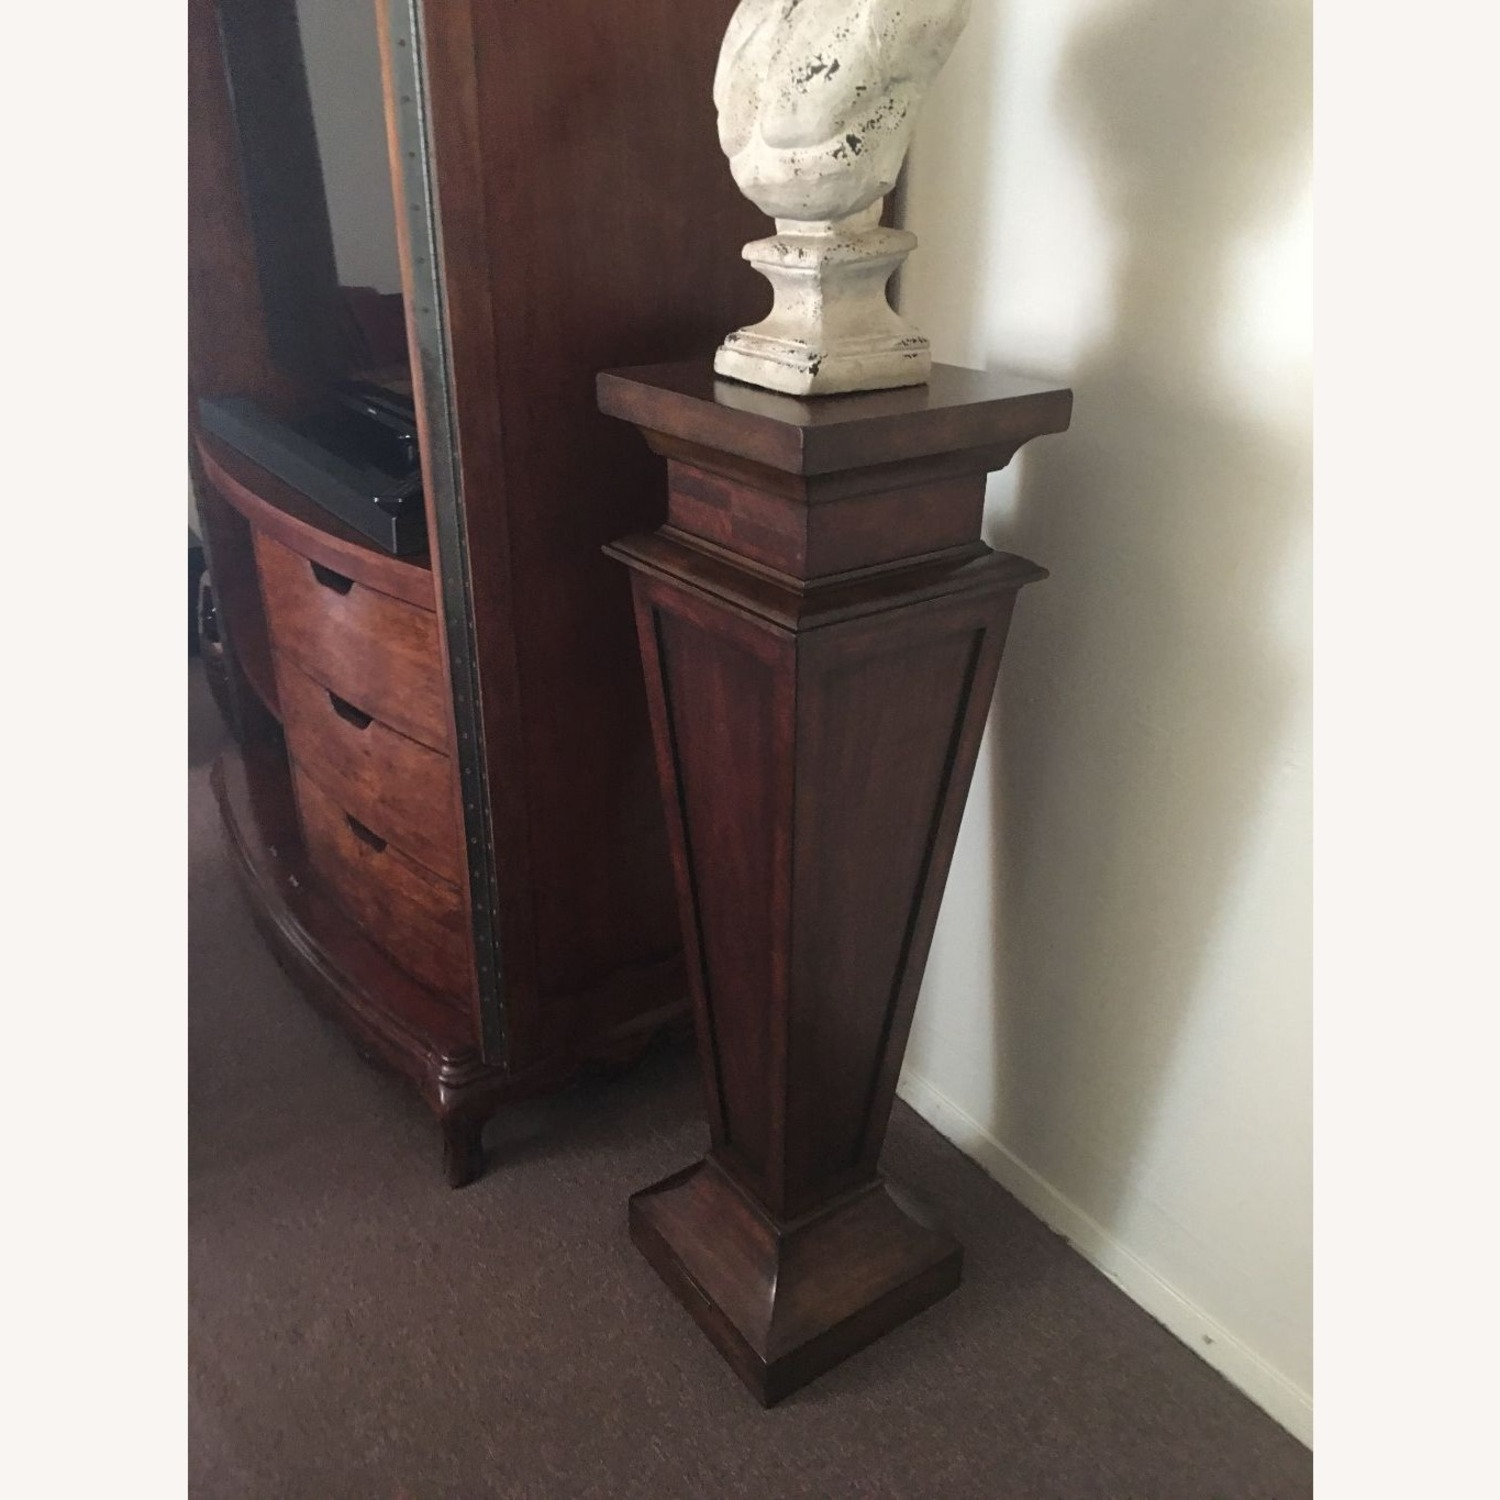 Neo Classical Pedestal With Bust - image-2